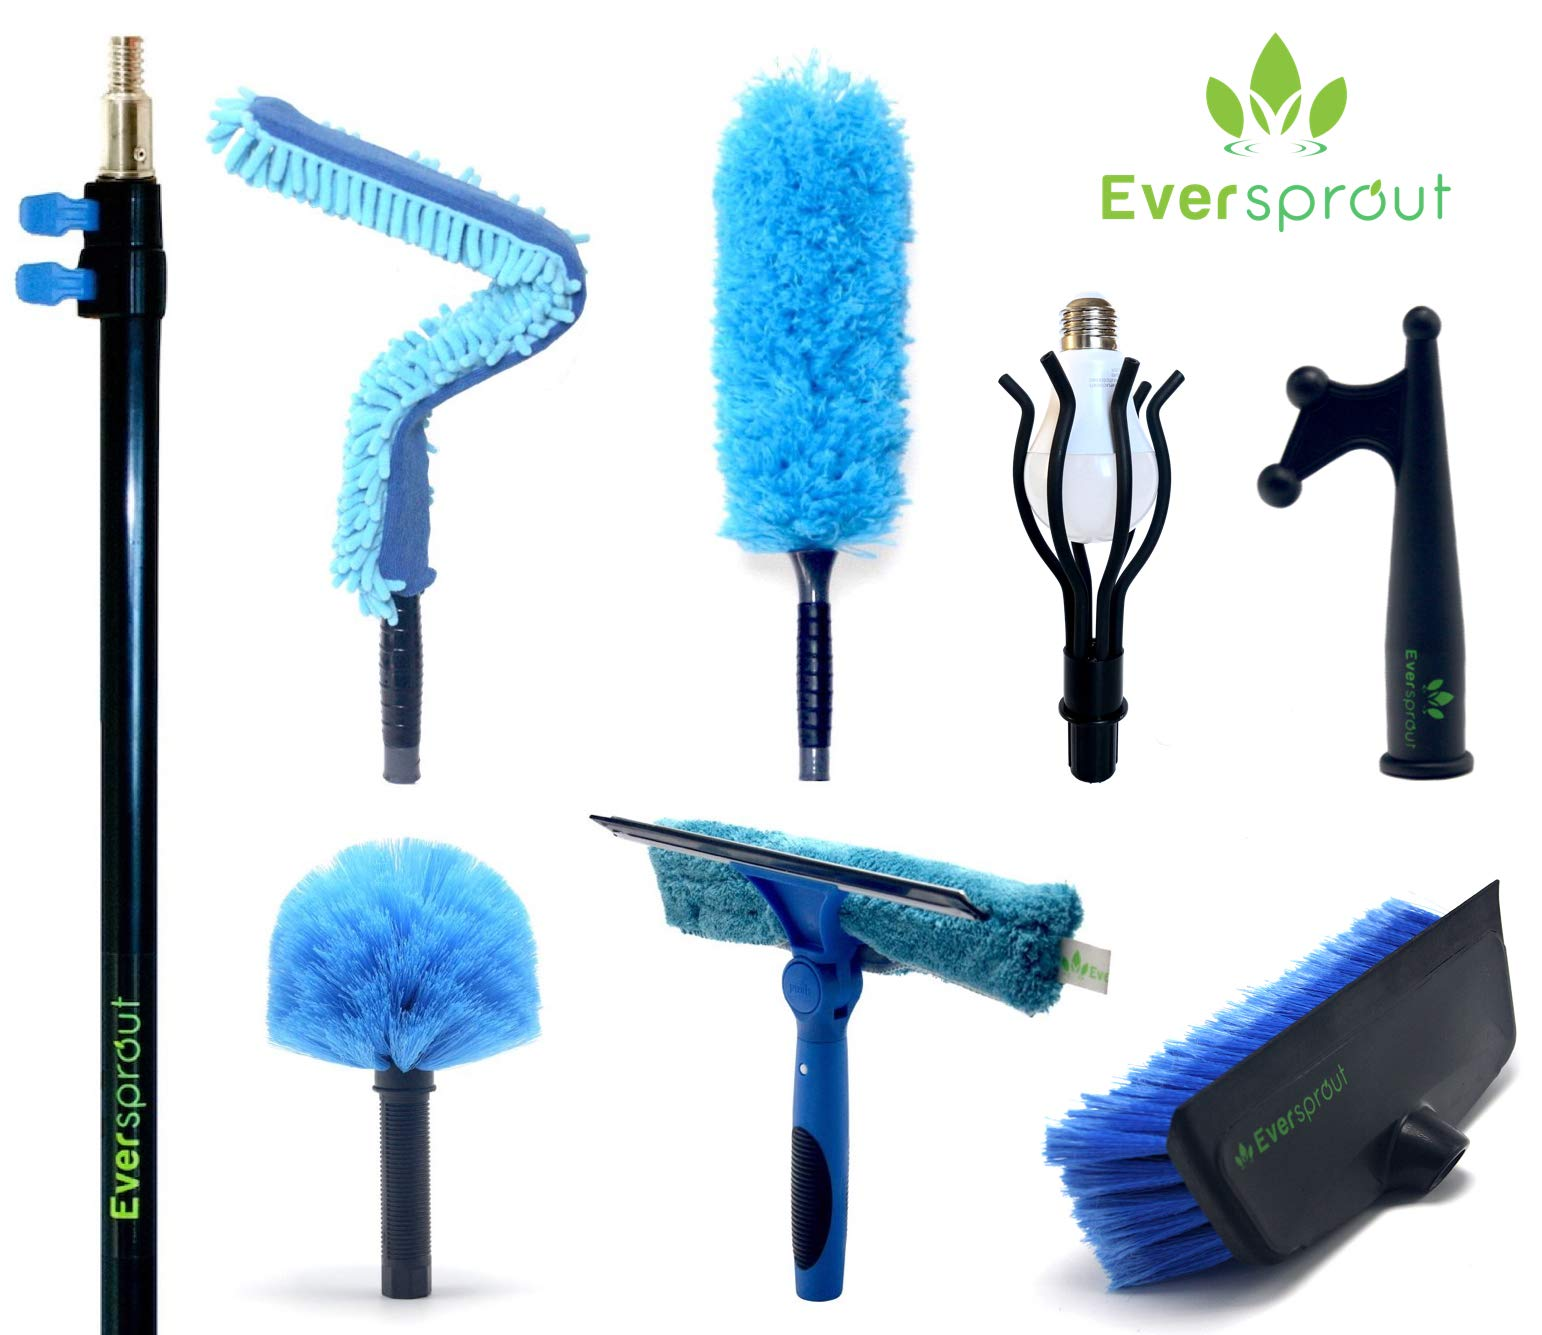 EVERSPROUT Extension Pole Total Kit (25+ Foot Reach) | Telescopic Pole, Scrub Brush, Light Bulb Changer, Utility Hook, Swivel Squeegee, 3X Microfiber Dusters (Cobweb, Flexible Ceiling Fan, Feather) by EVERSPROUT